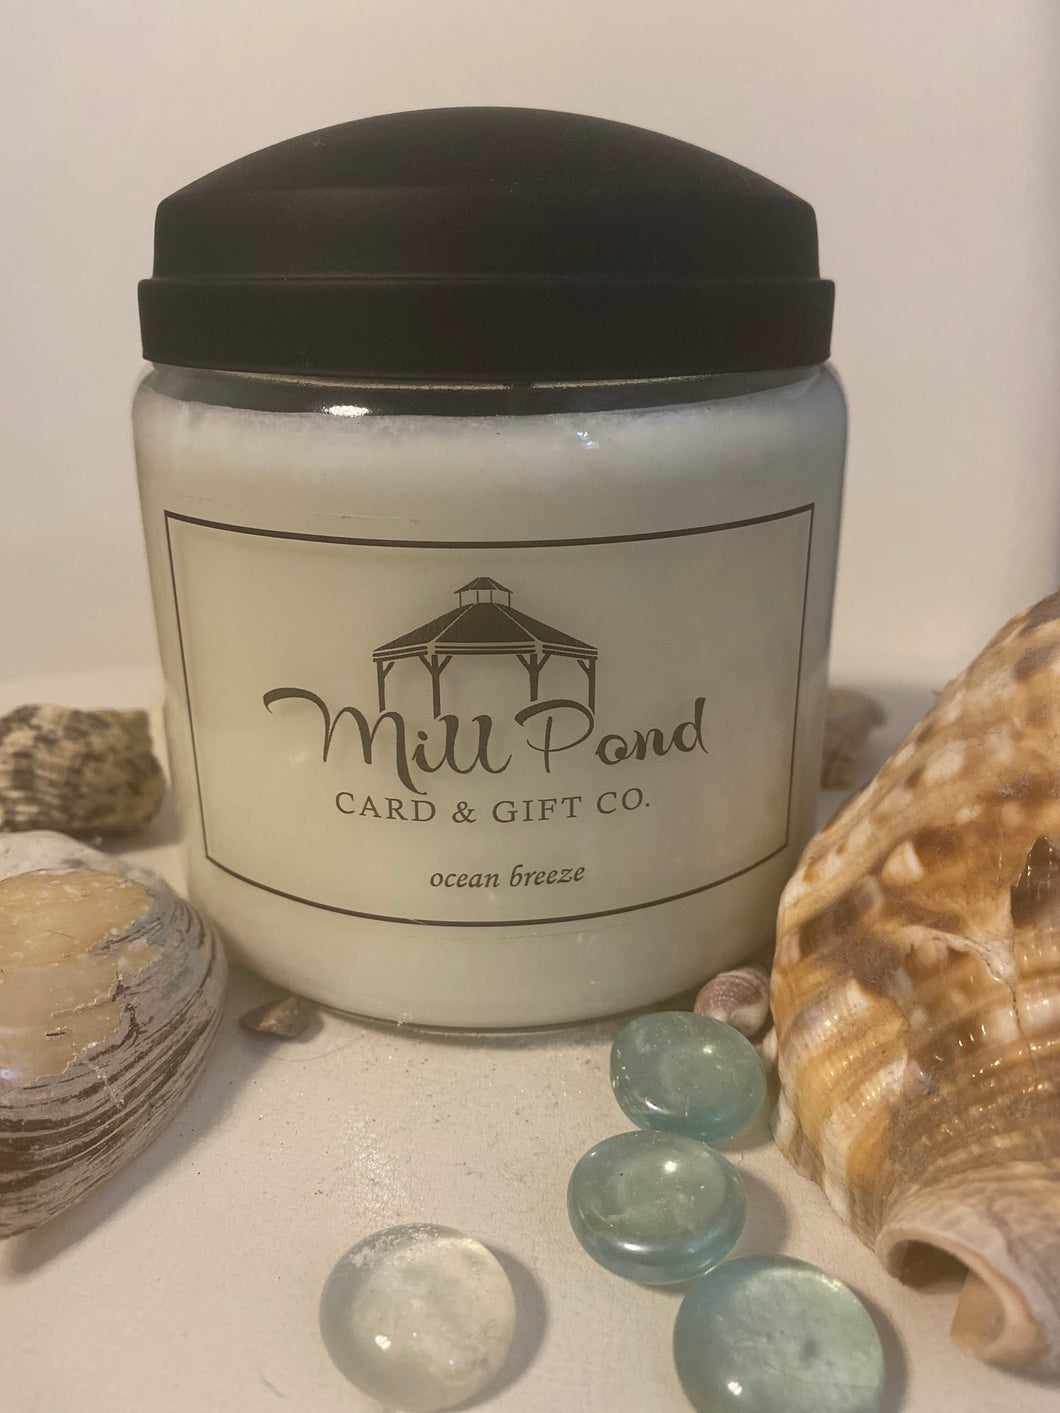 Ocean Breeze (Mill Pond Card & Gift Candle)